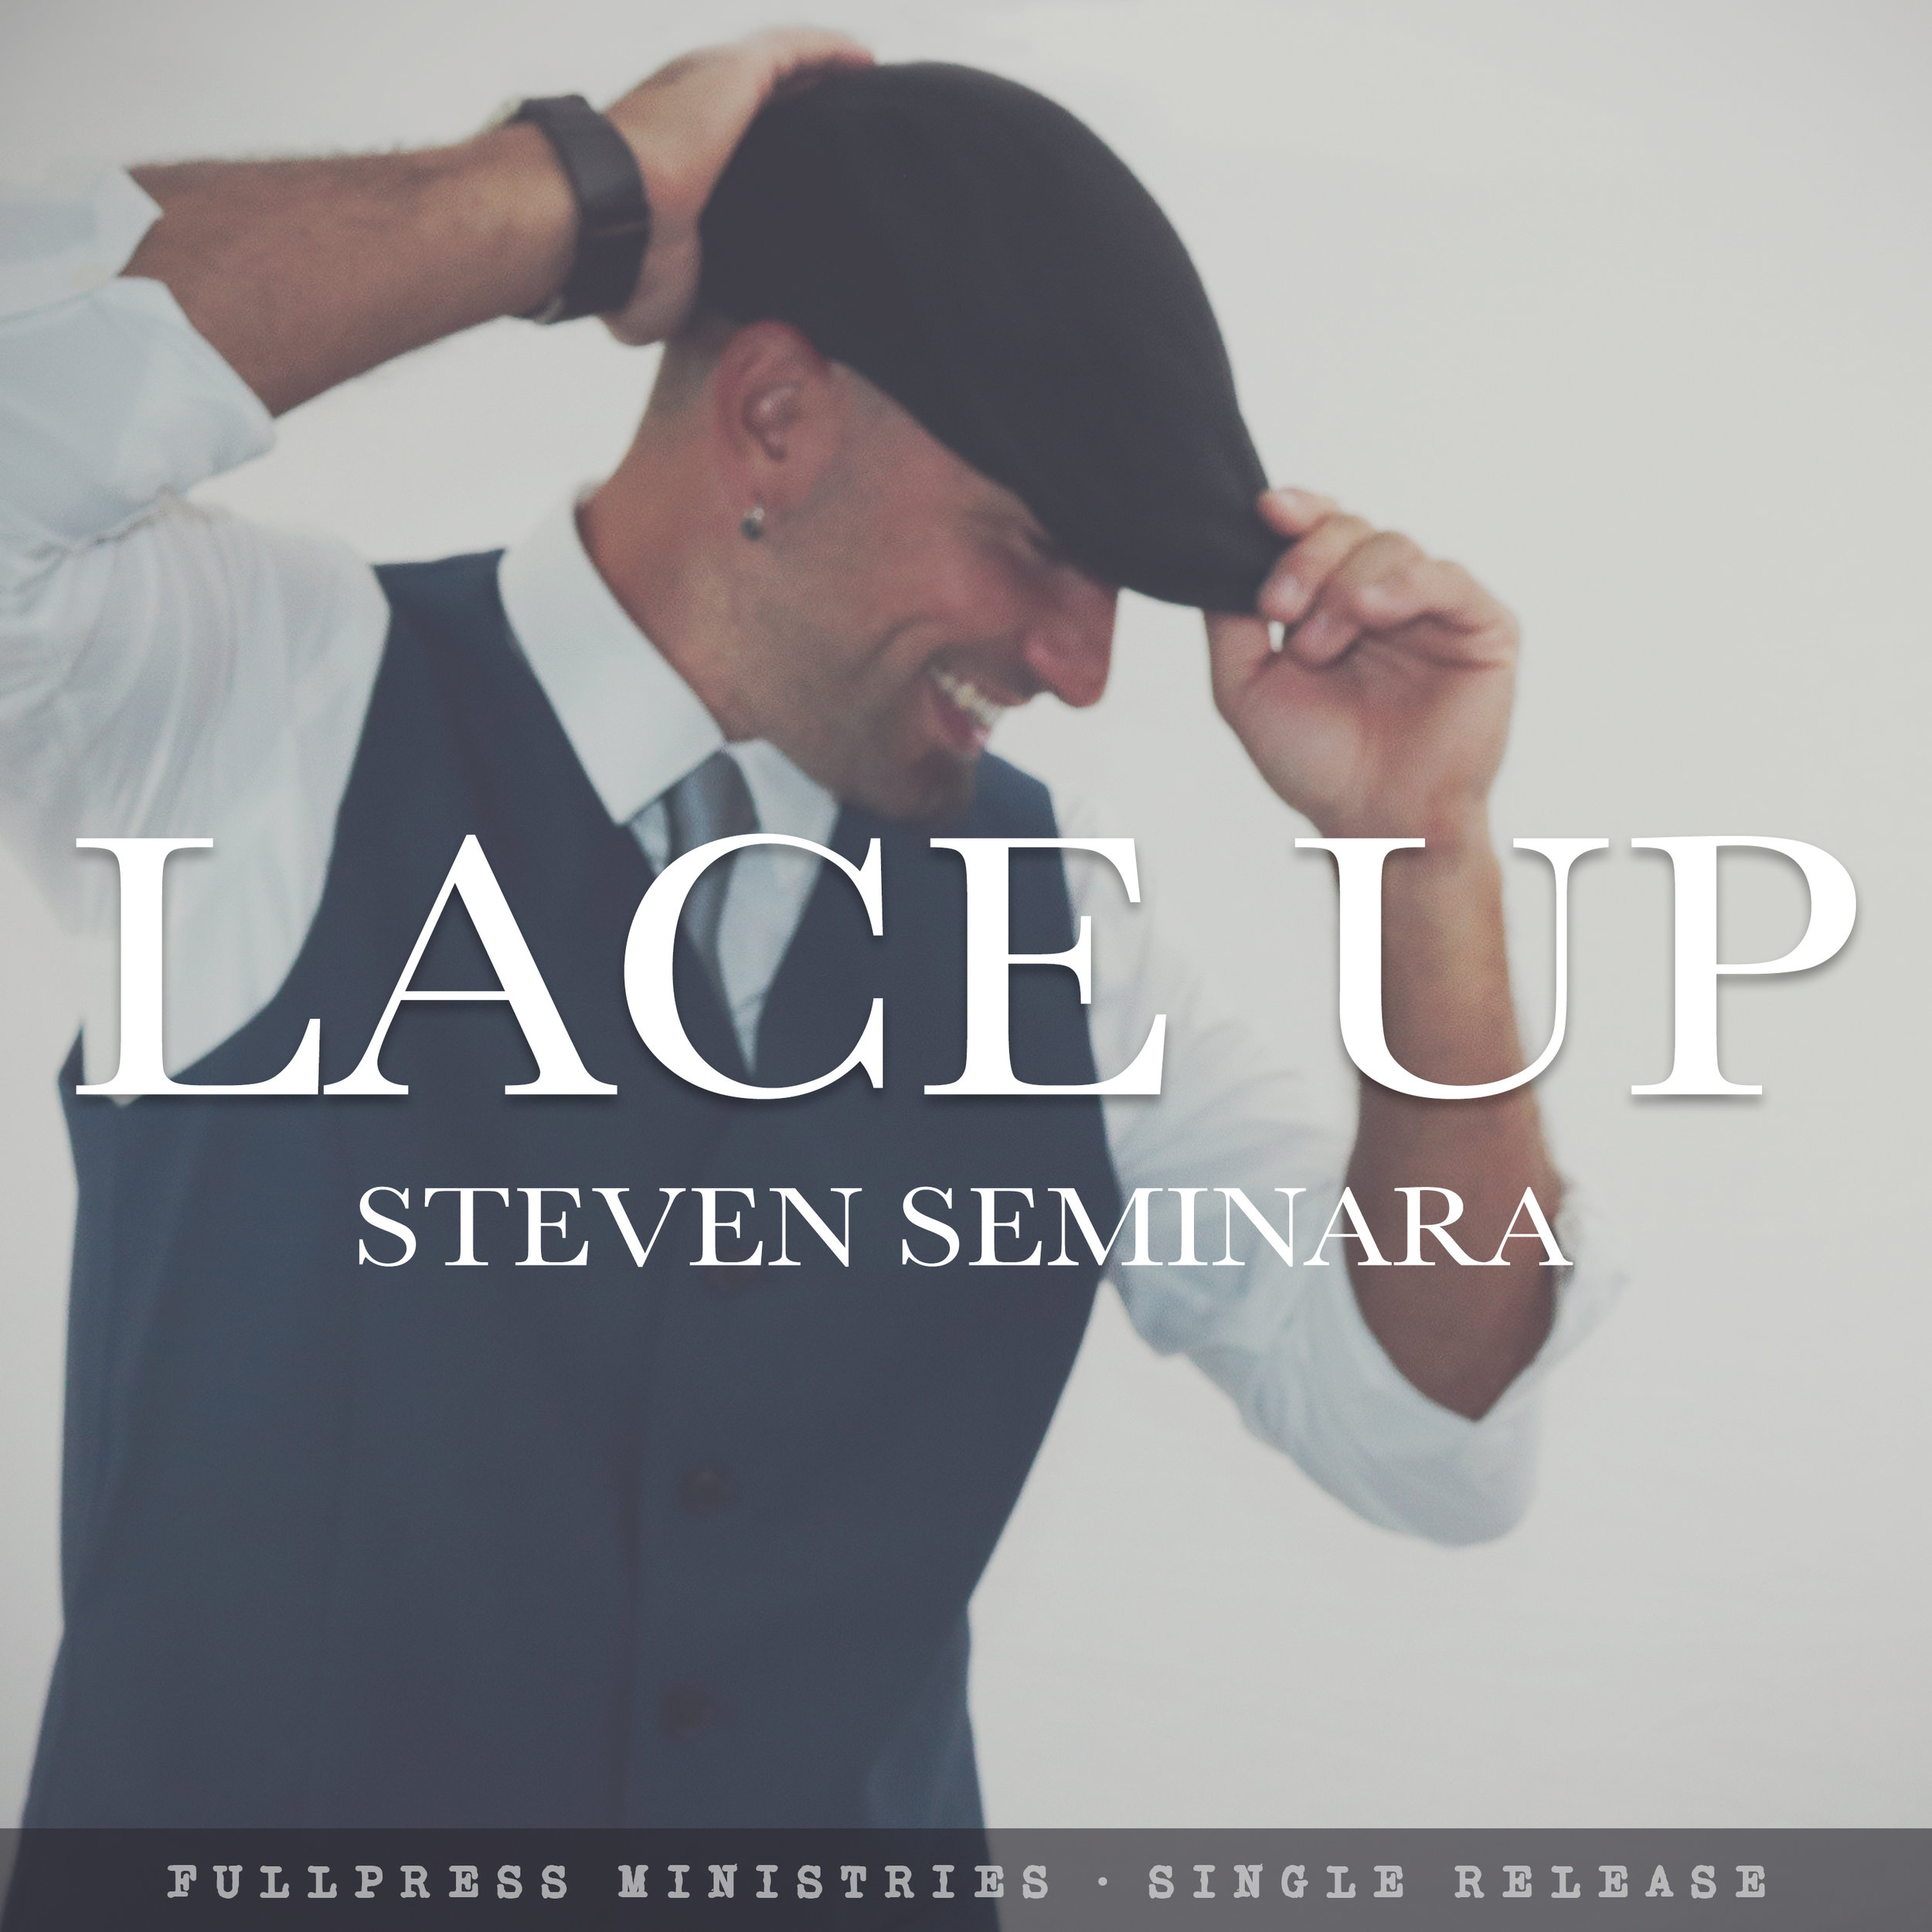 Lace Up - (Single)Click picture for purchase!